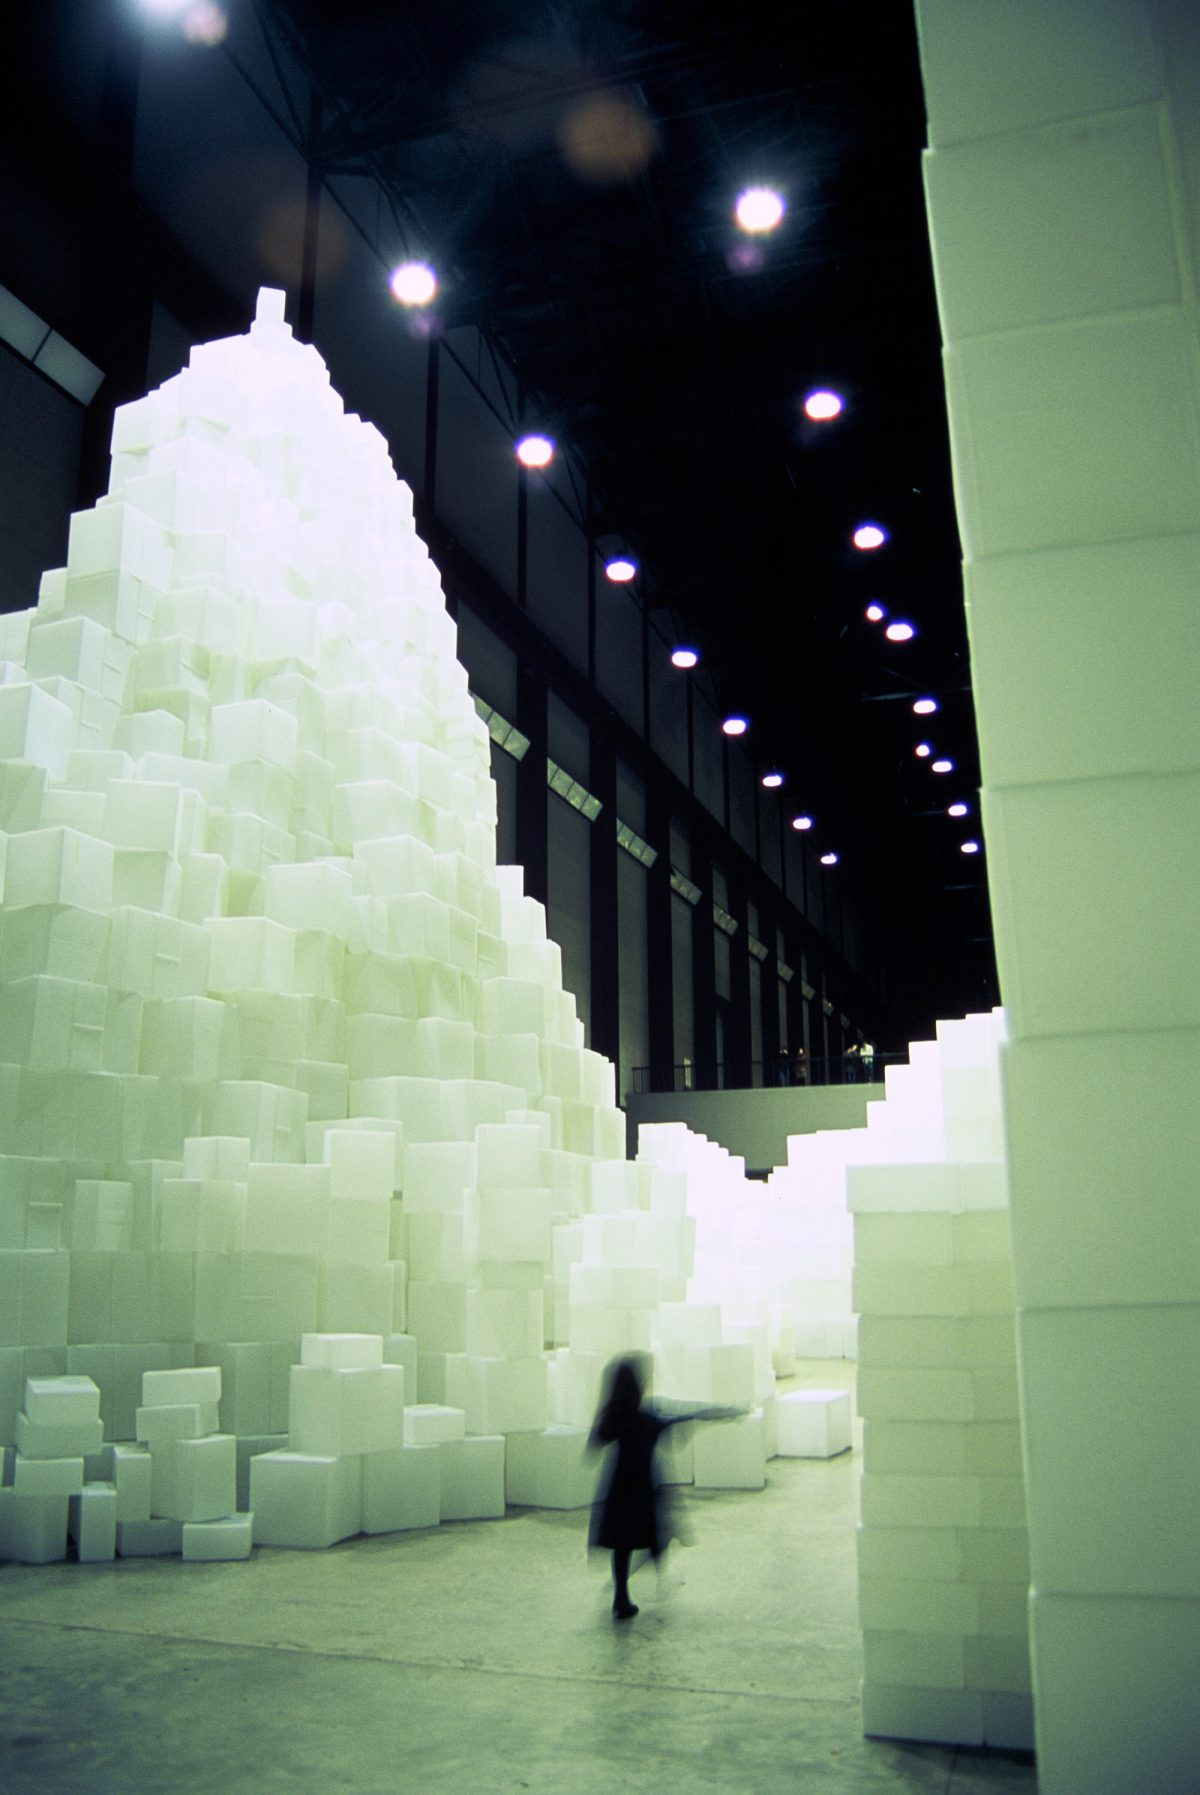 Installation - Instalation by Rachel Whiteread at Tate Modern, kid, art, sculpture